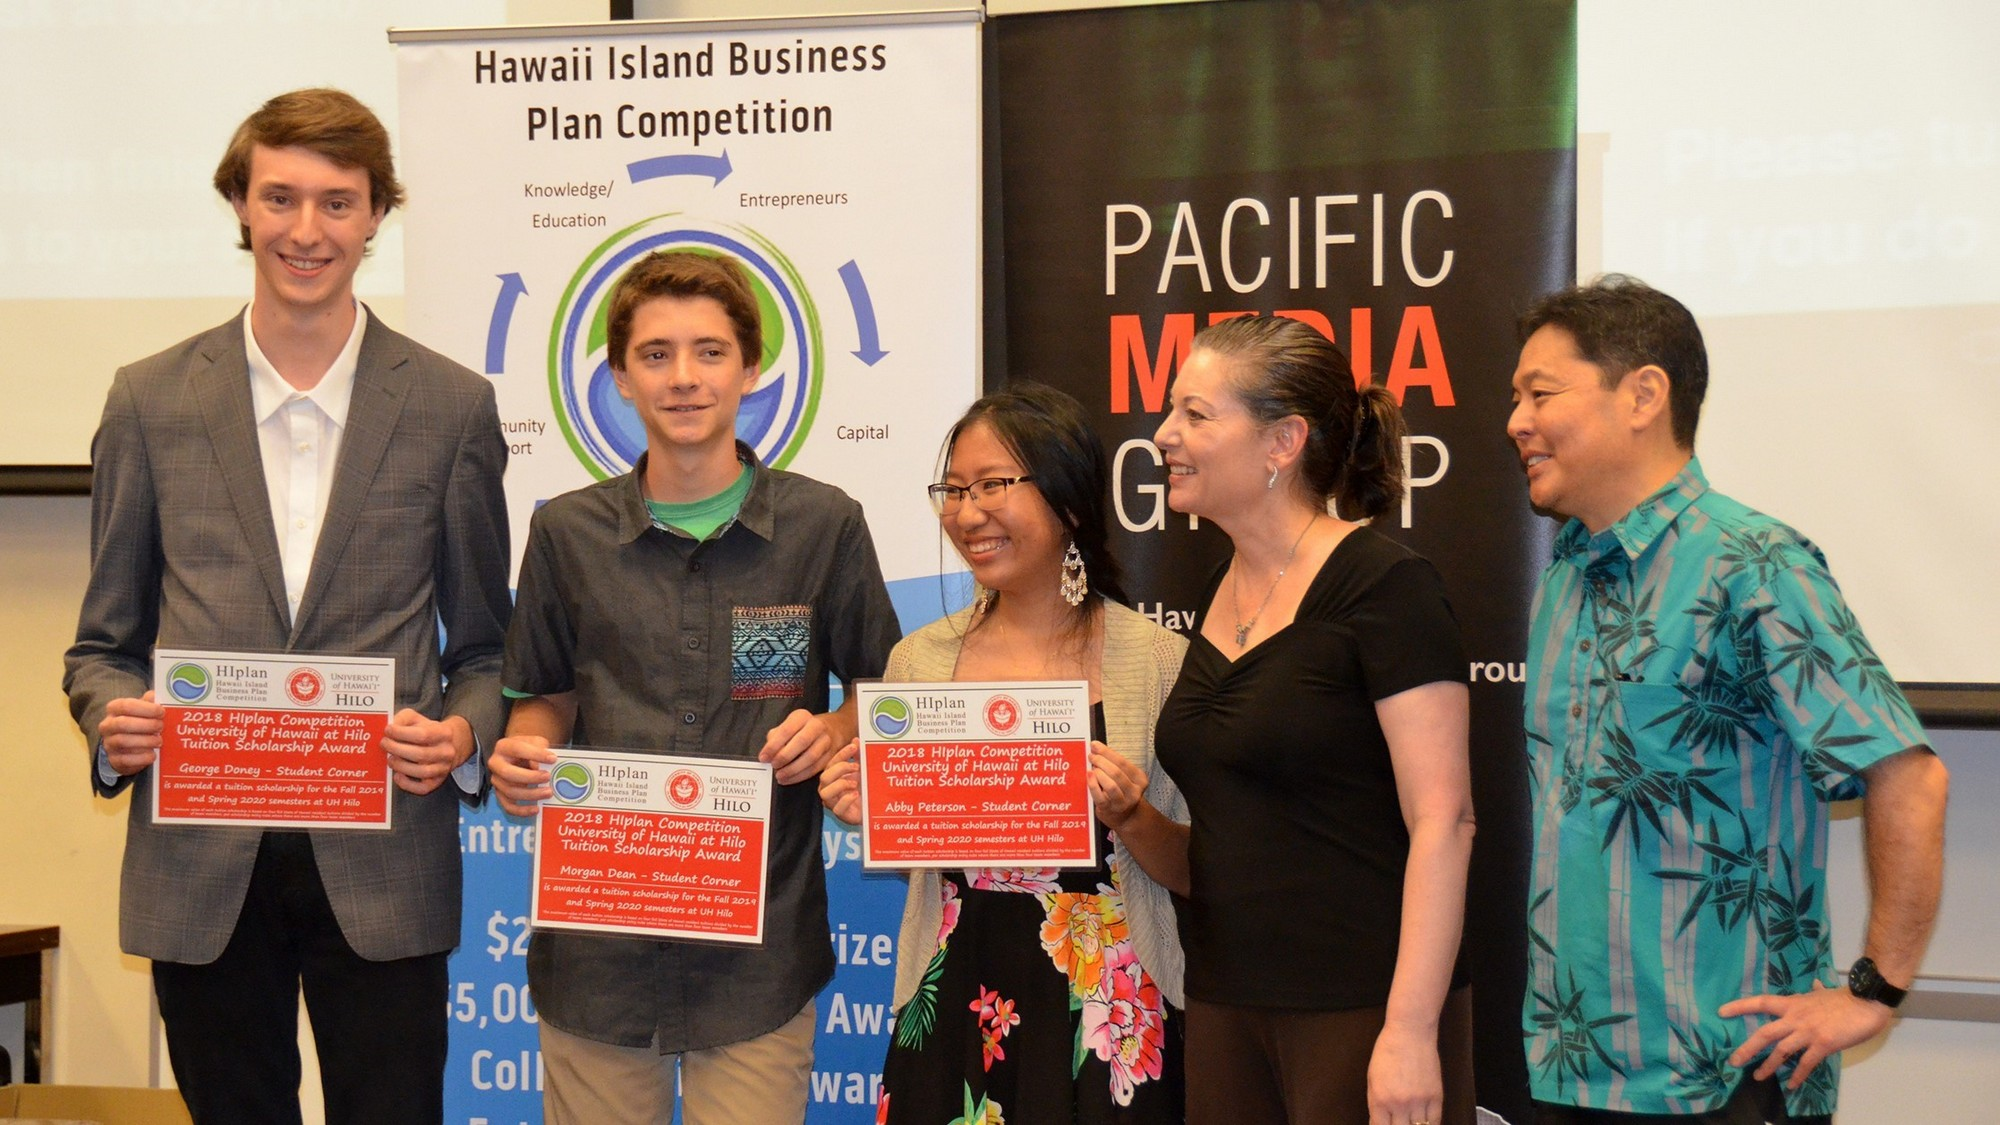 Team of UH Hilo, Arizona State, and local high school students wins student category in business plan competition